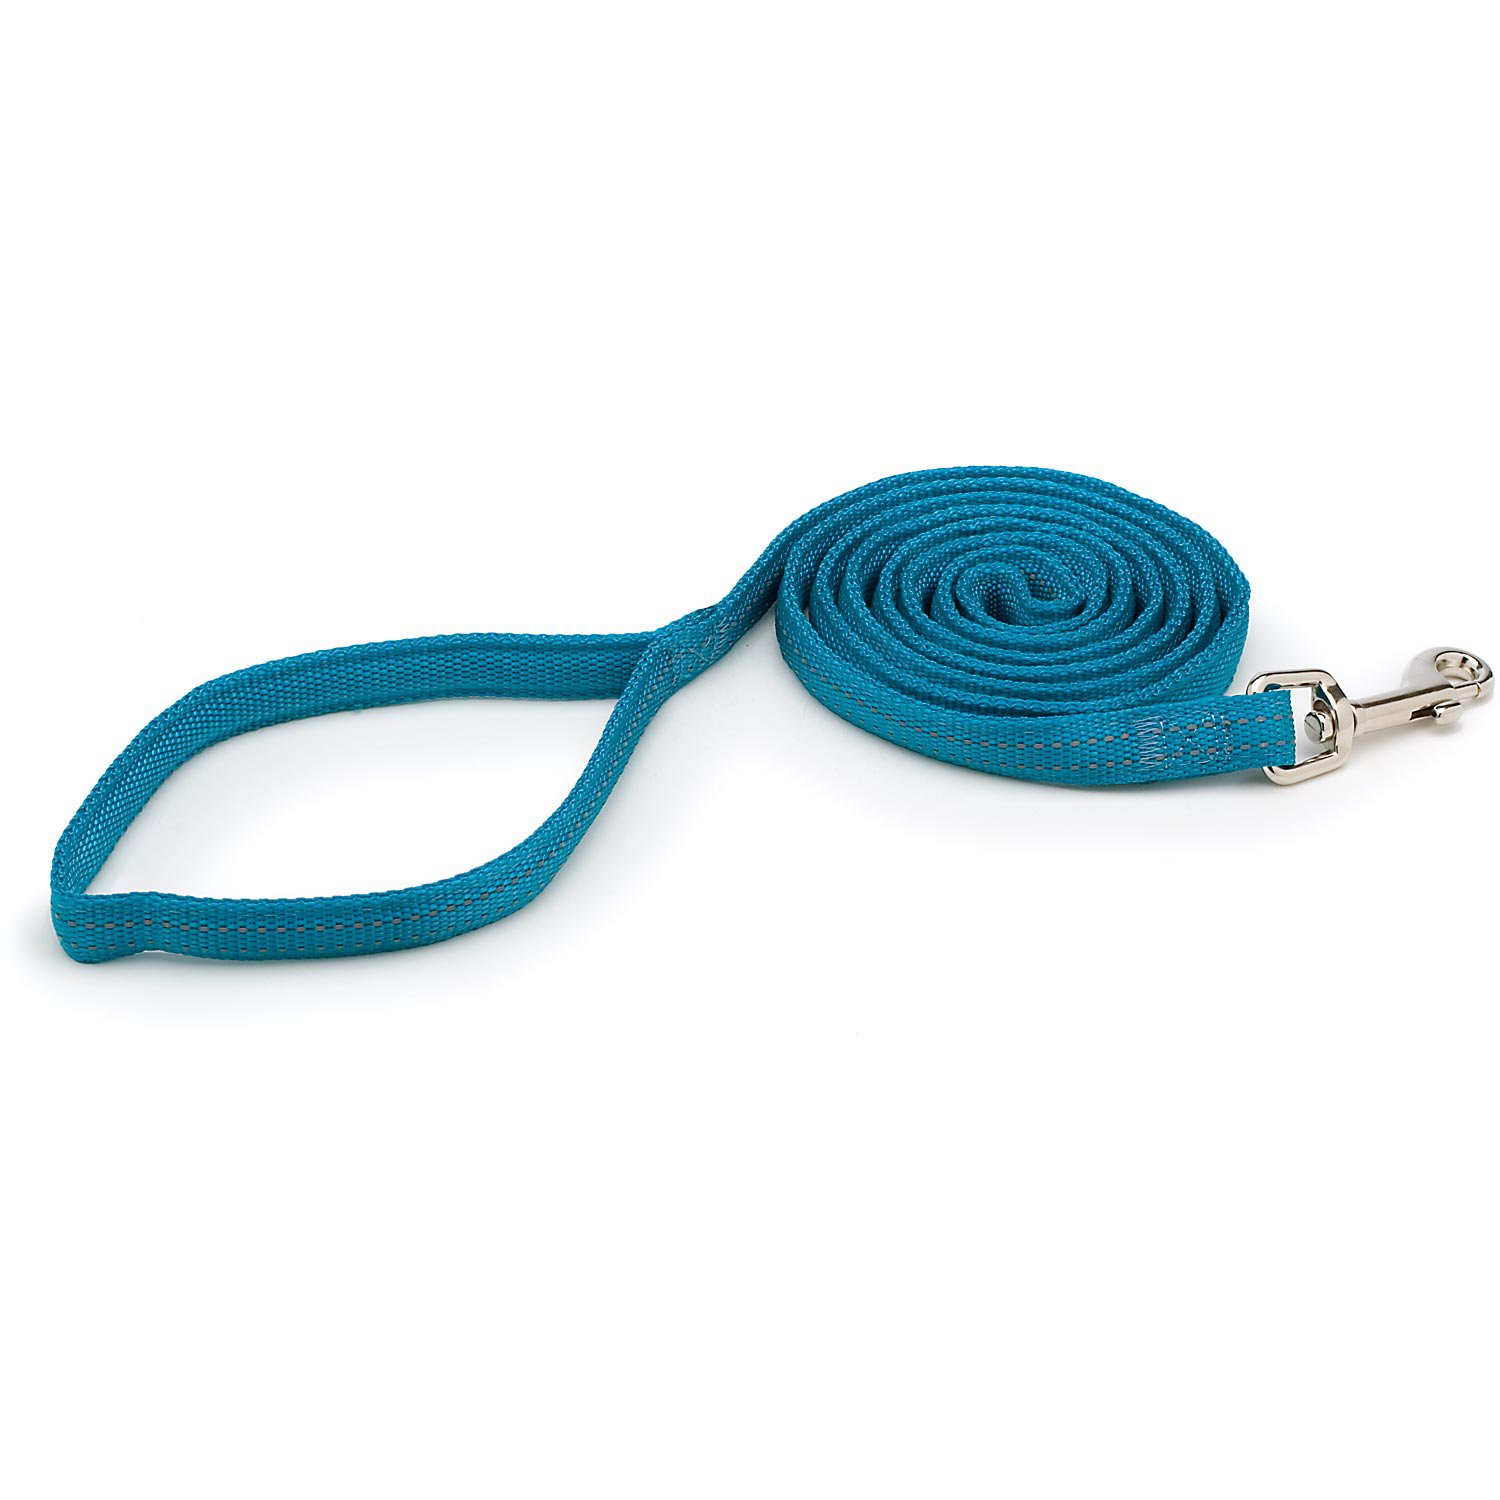 """Aspen Pet by Petmate Nylon Reflective Padded Dog Leash in Teal, 5/8"""" Width"""